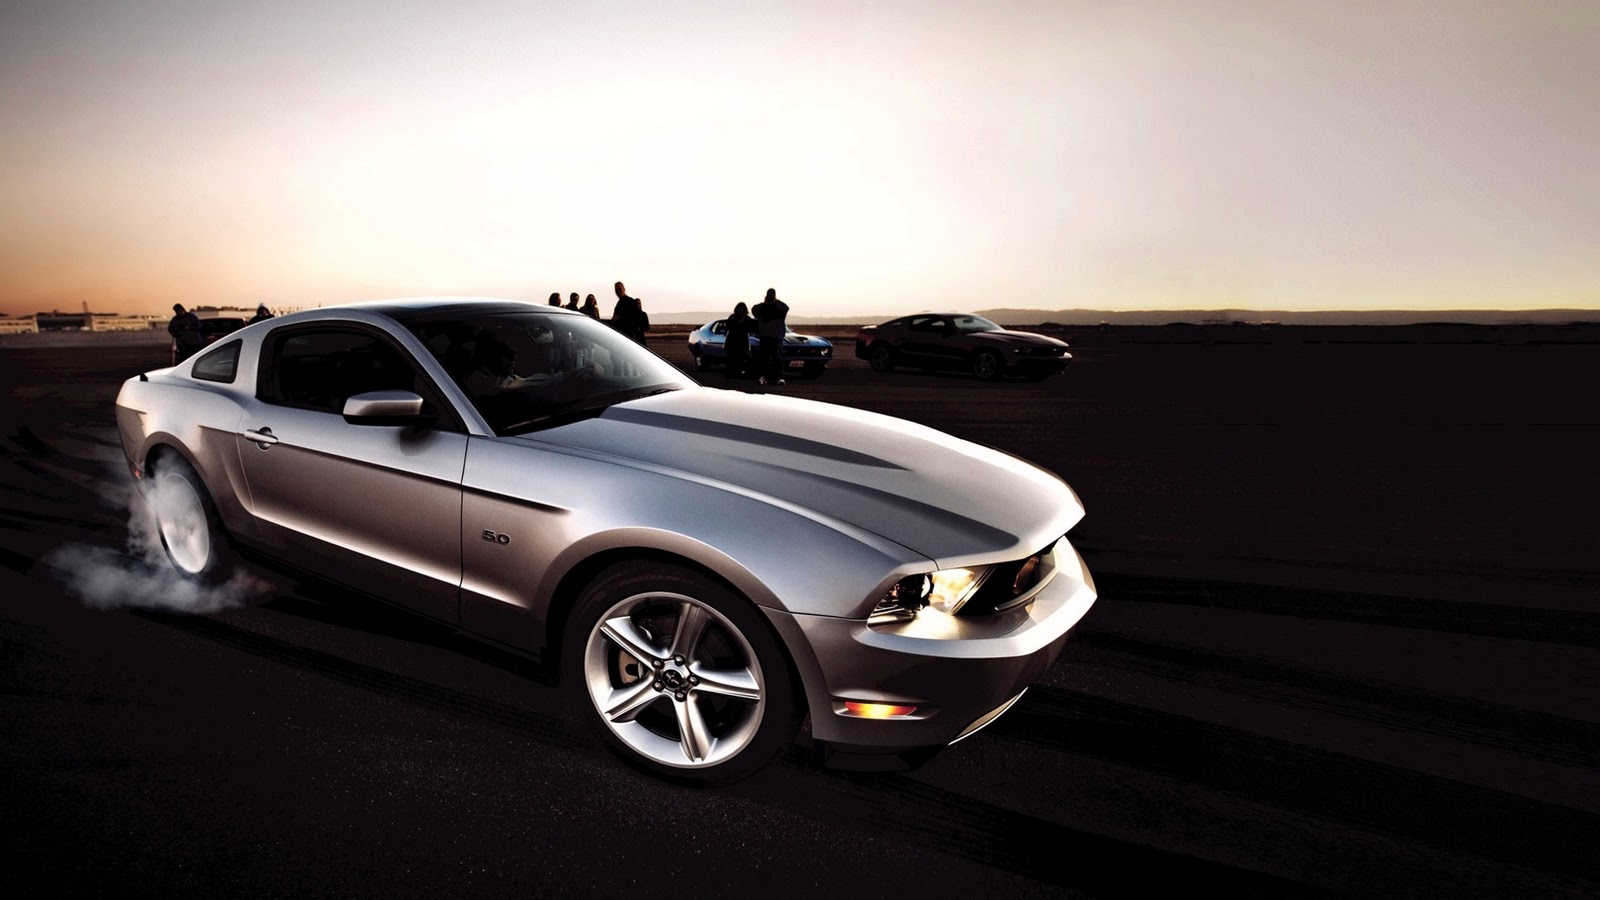 ford mustang ford mustang photo desktop ford mustang wallpapers ford 1600x900